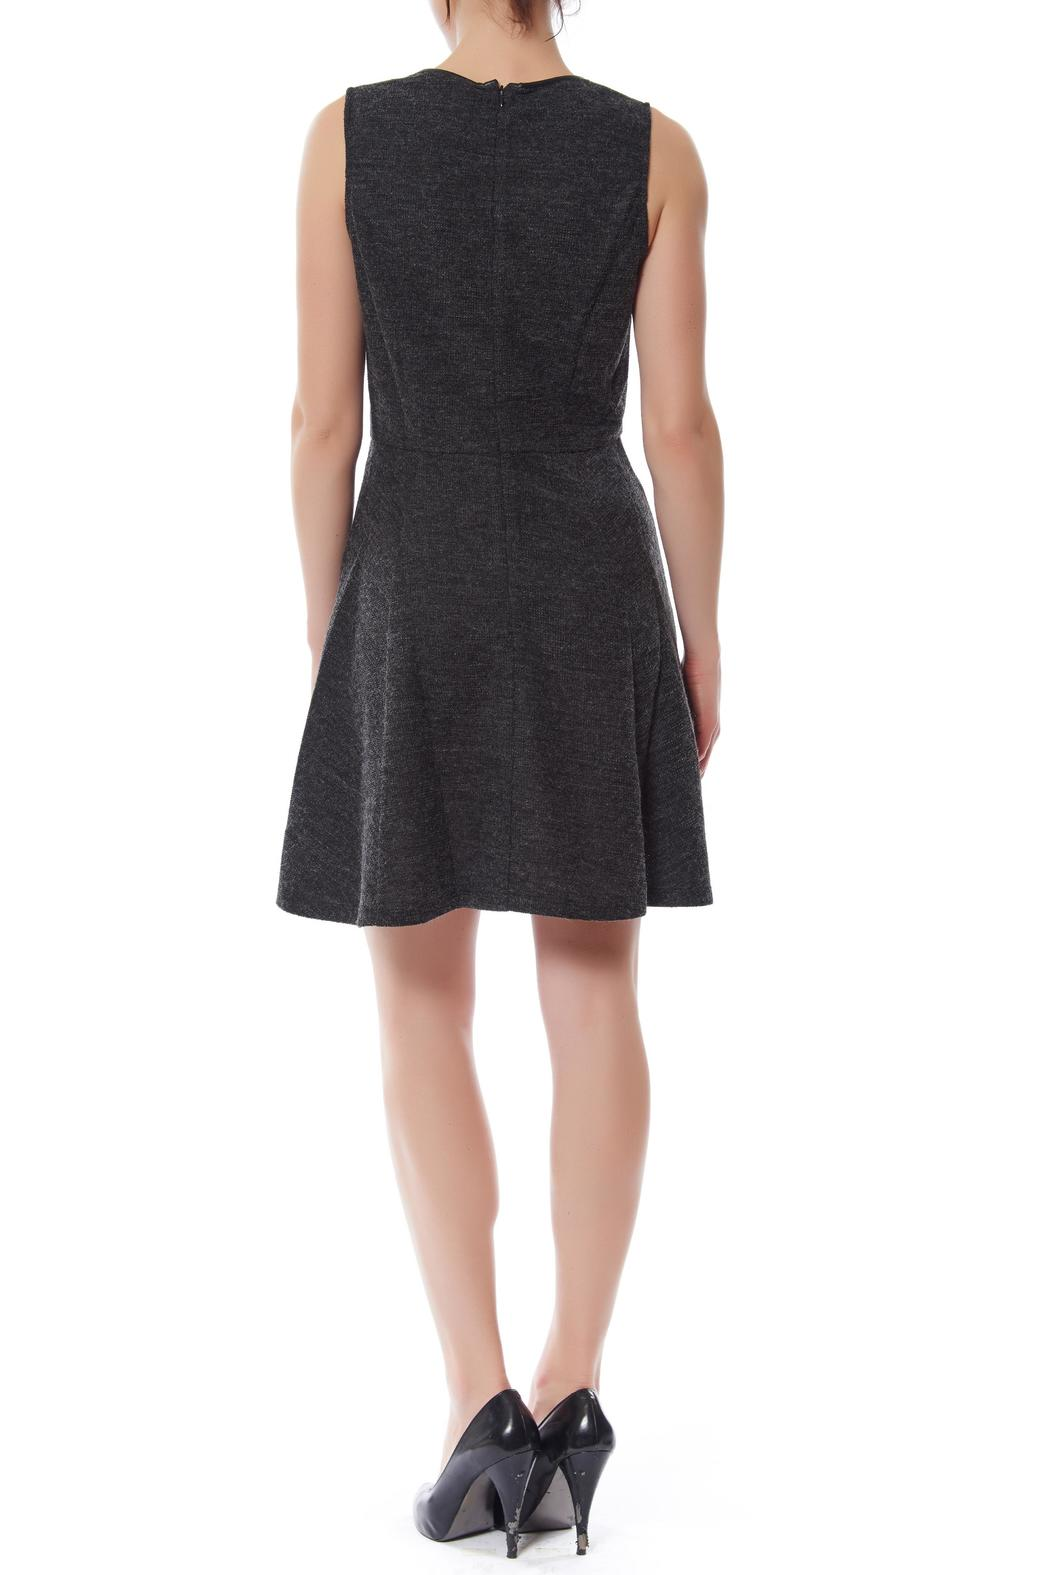 Grey A Line Dress image